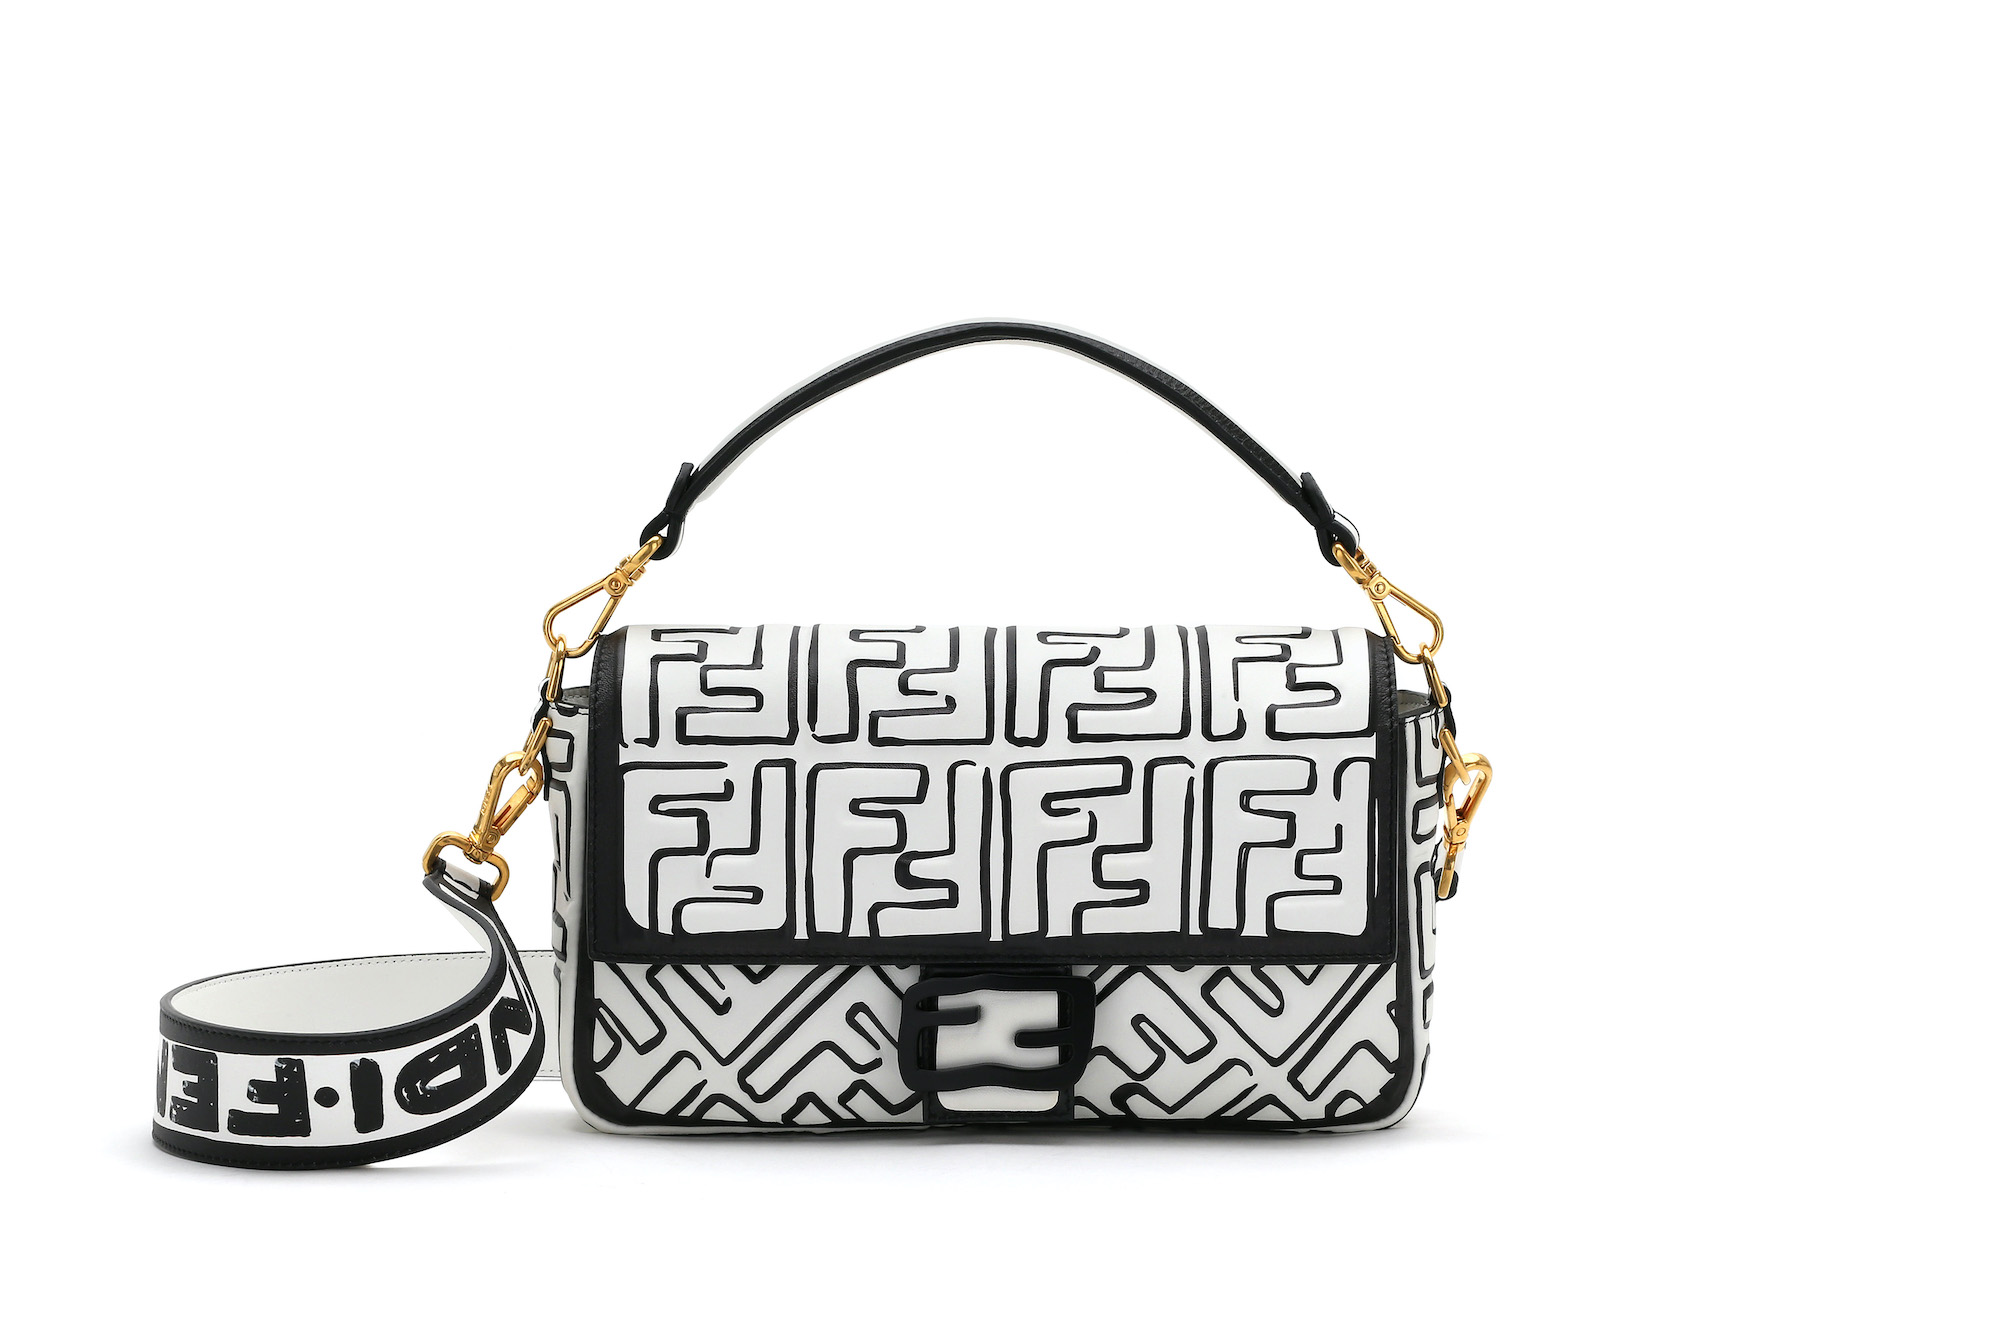 FENDI prefall collection 2020 black and white fendi bag